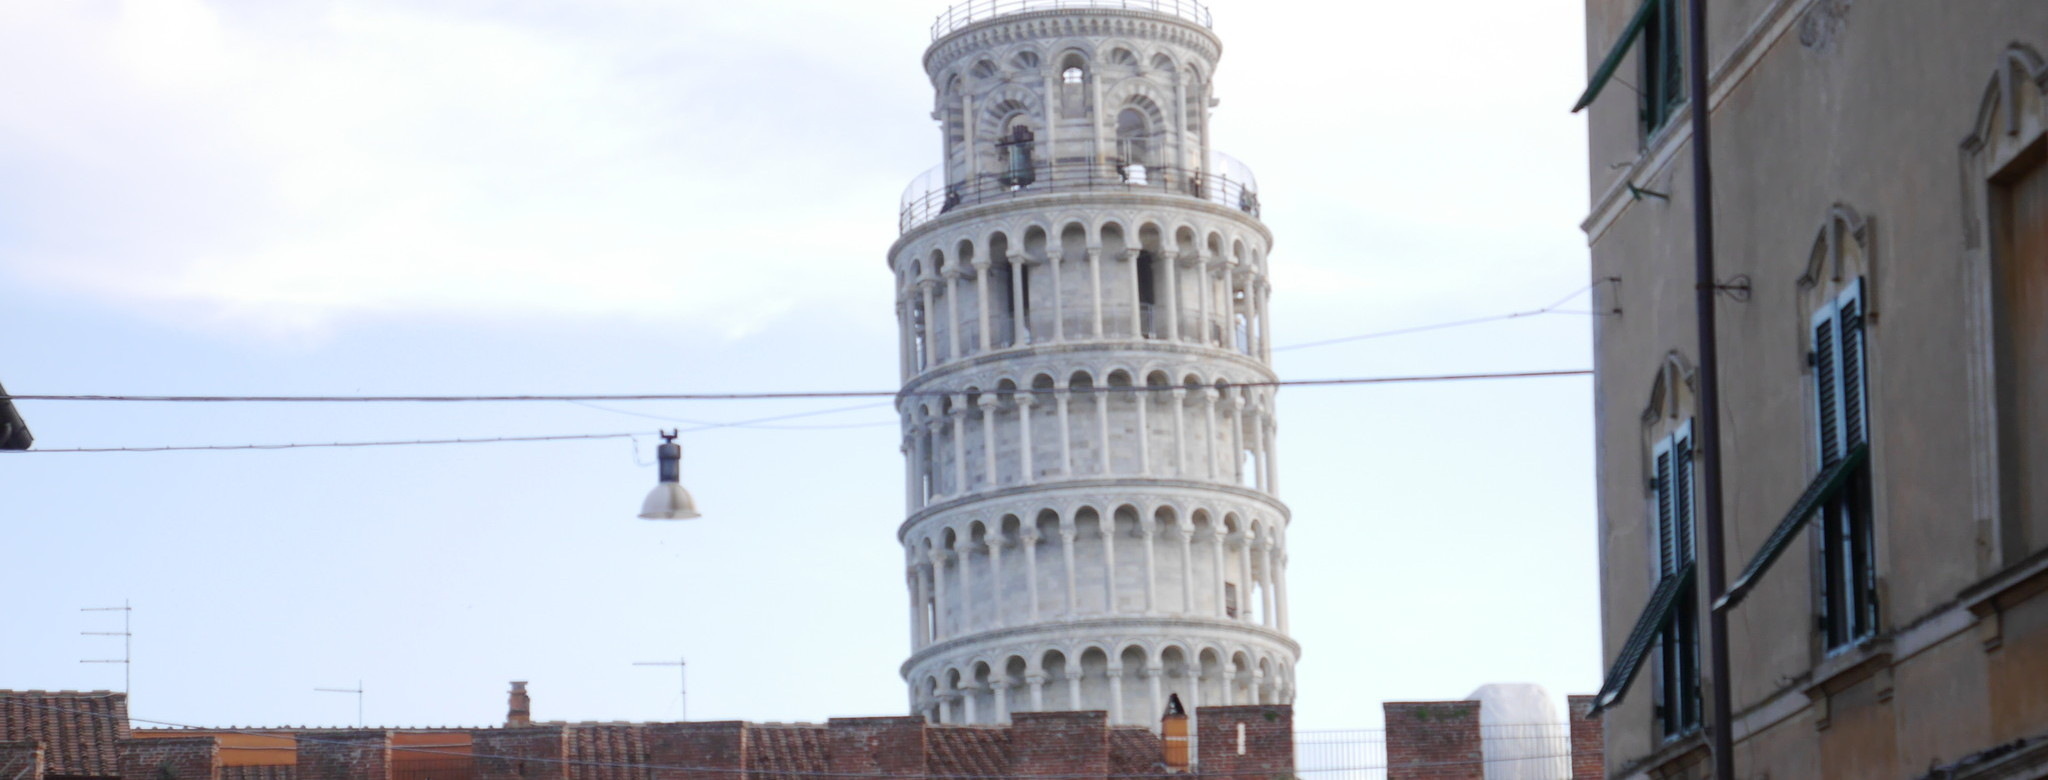 The leaning tower lurks in wait.